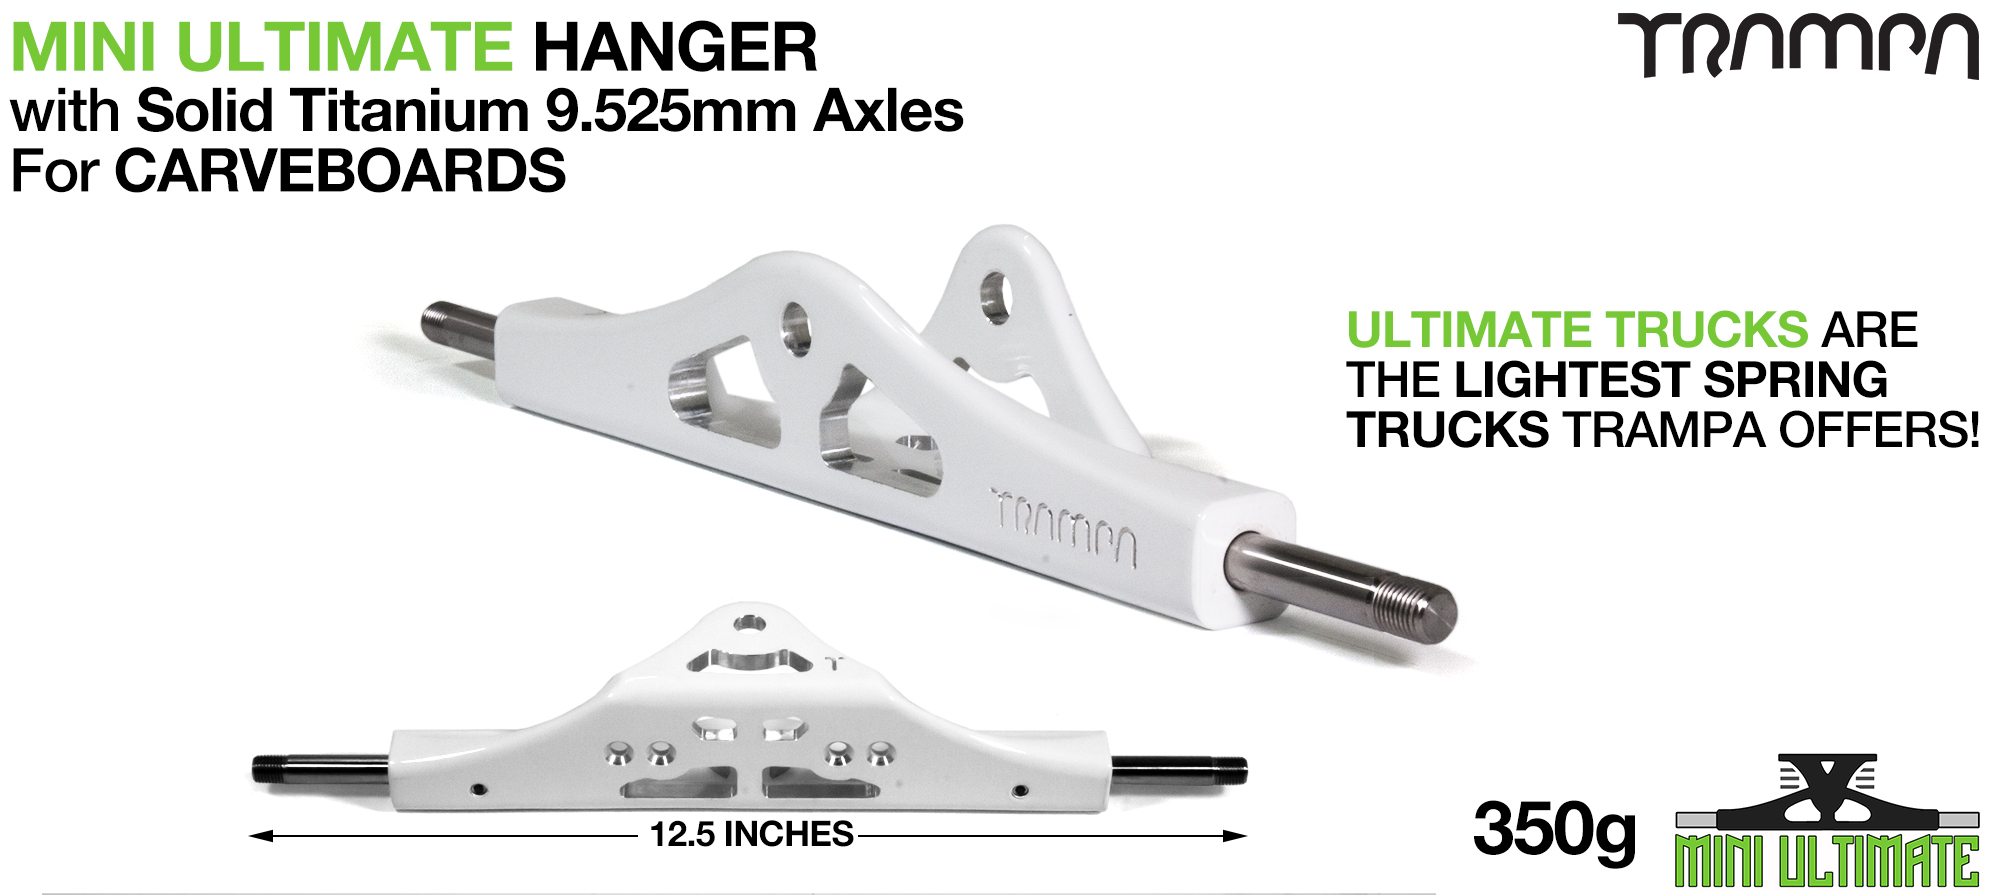 Mini ULTIMATE Hanger - 9.525mm TITANIUM Axles (+£75)